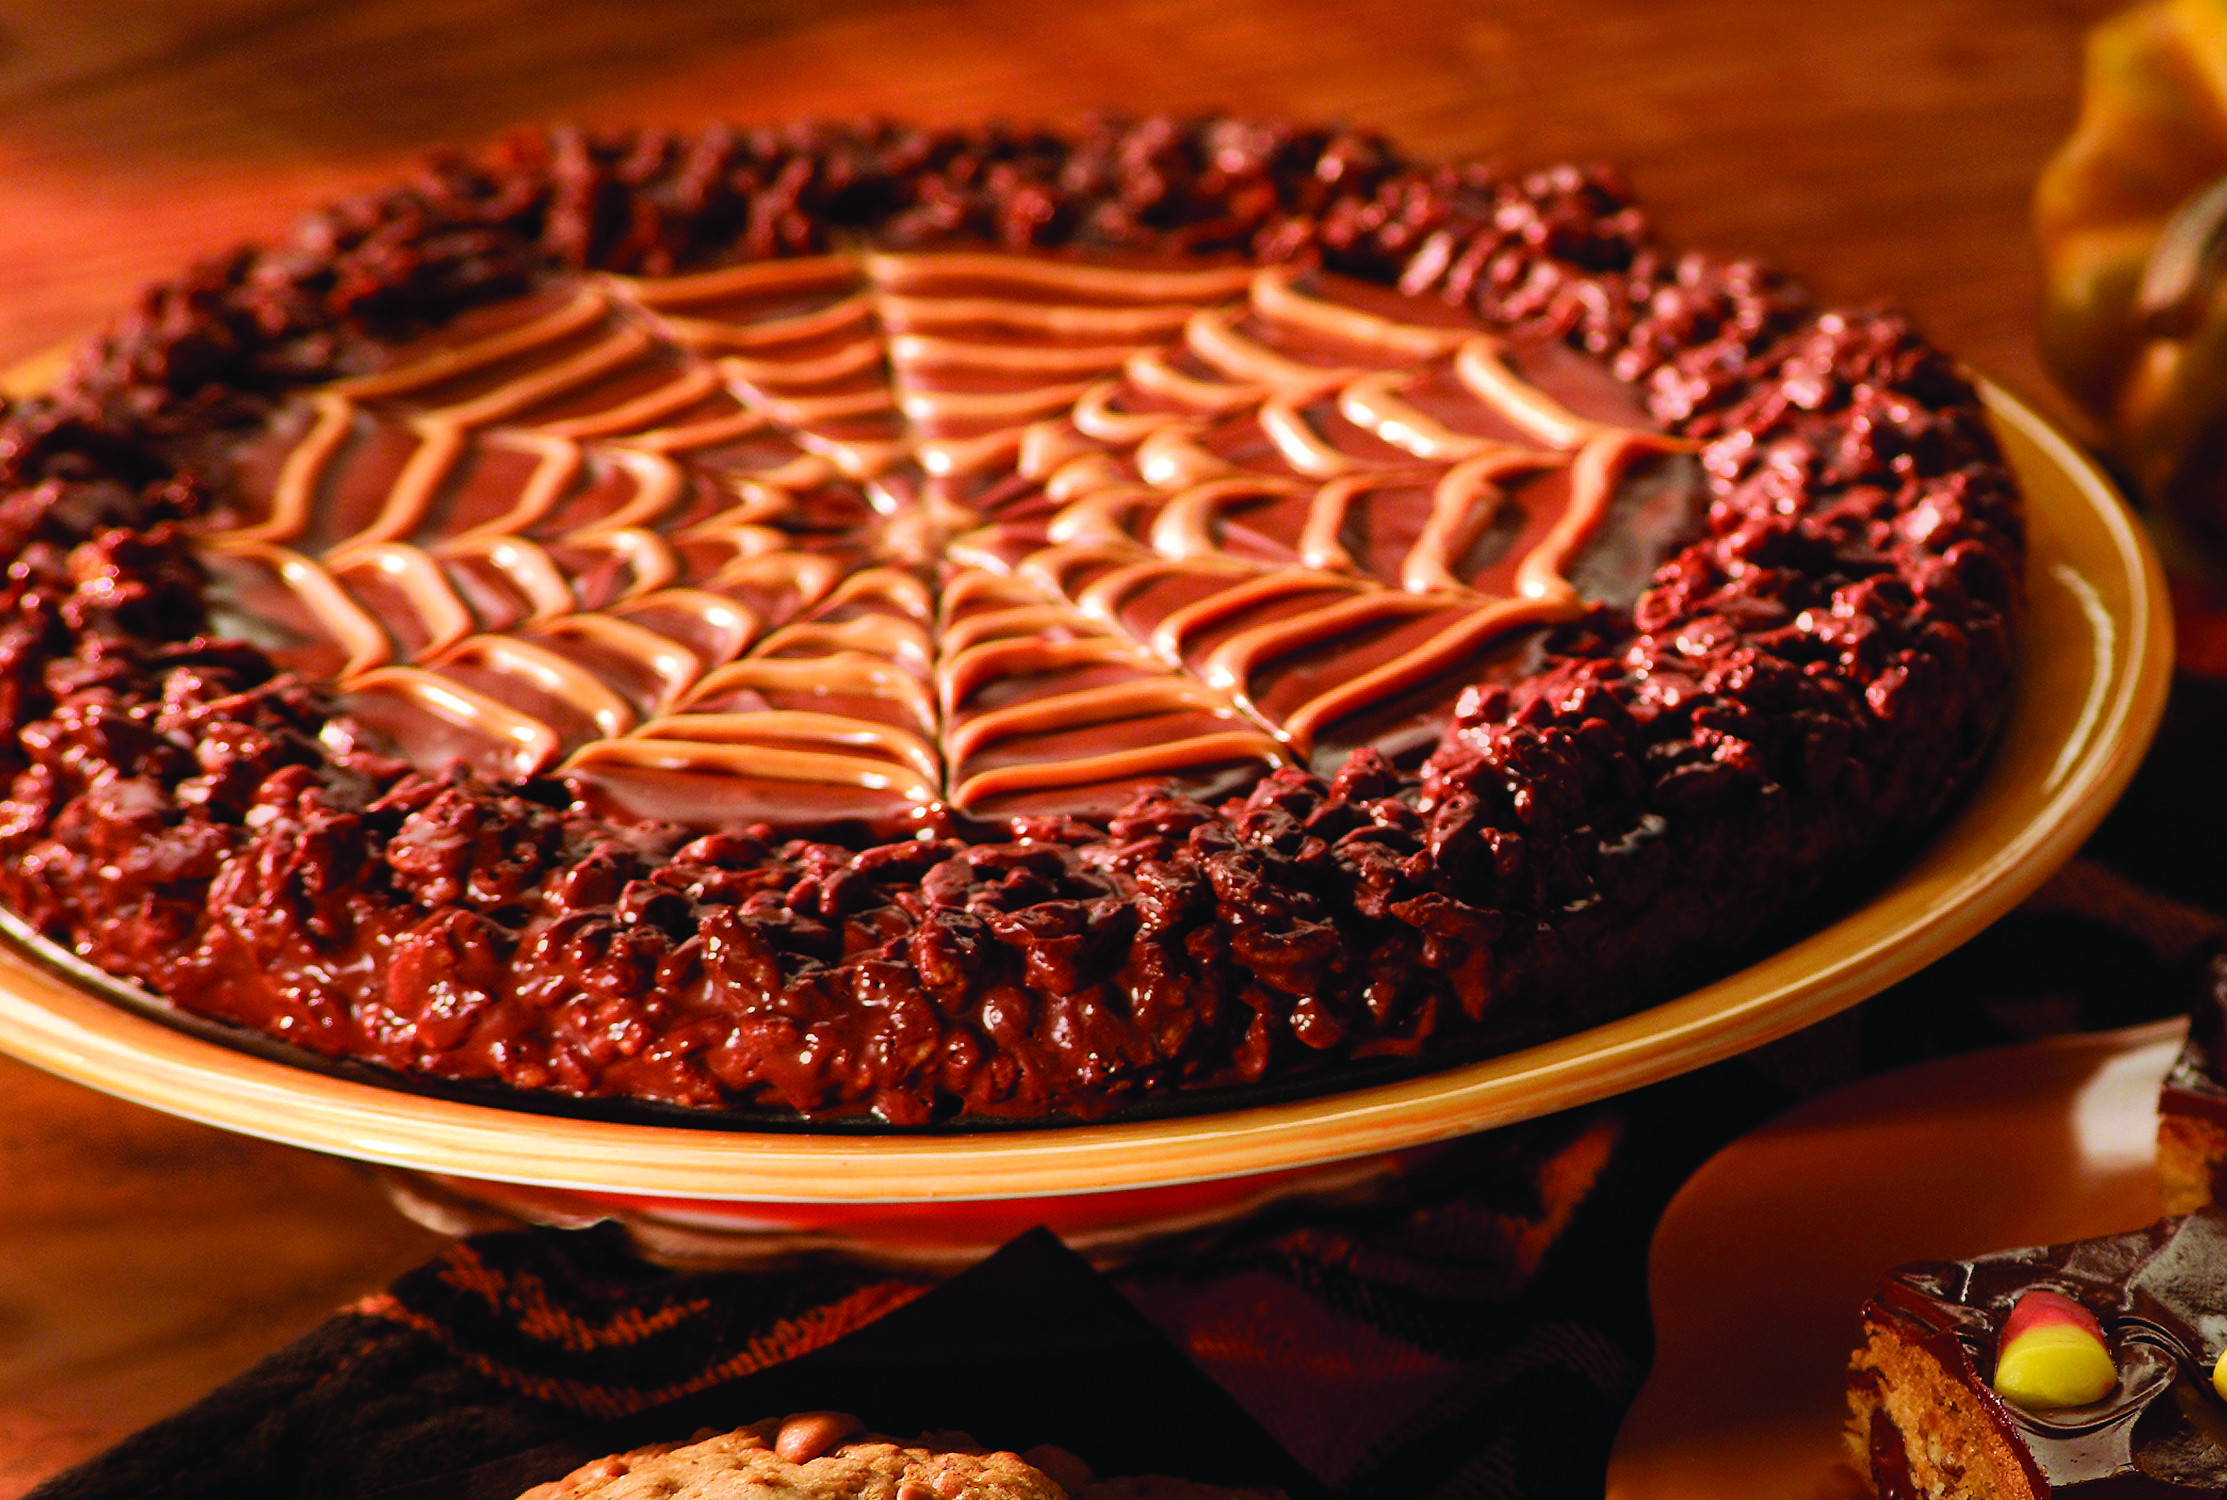 Halloween Desserts Recipes  Two Recipes for Festive Halloween Desserts NY Metro